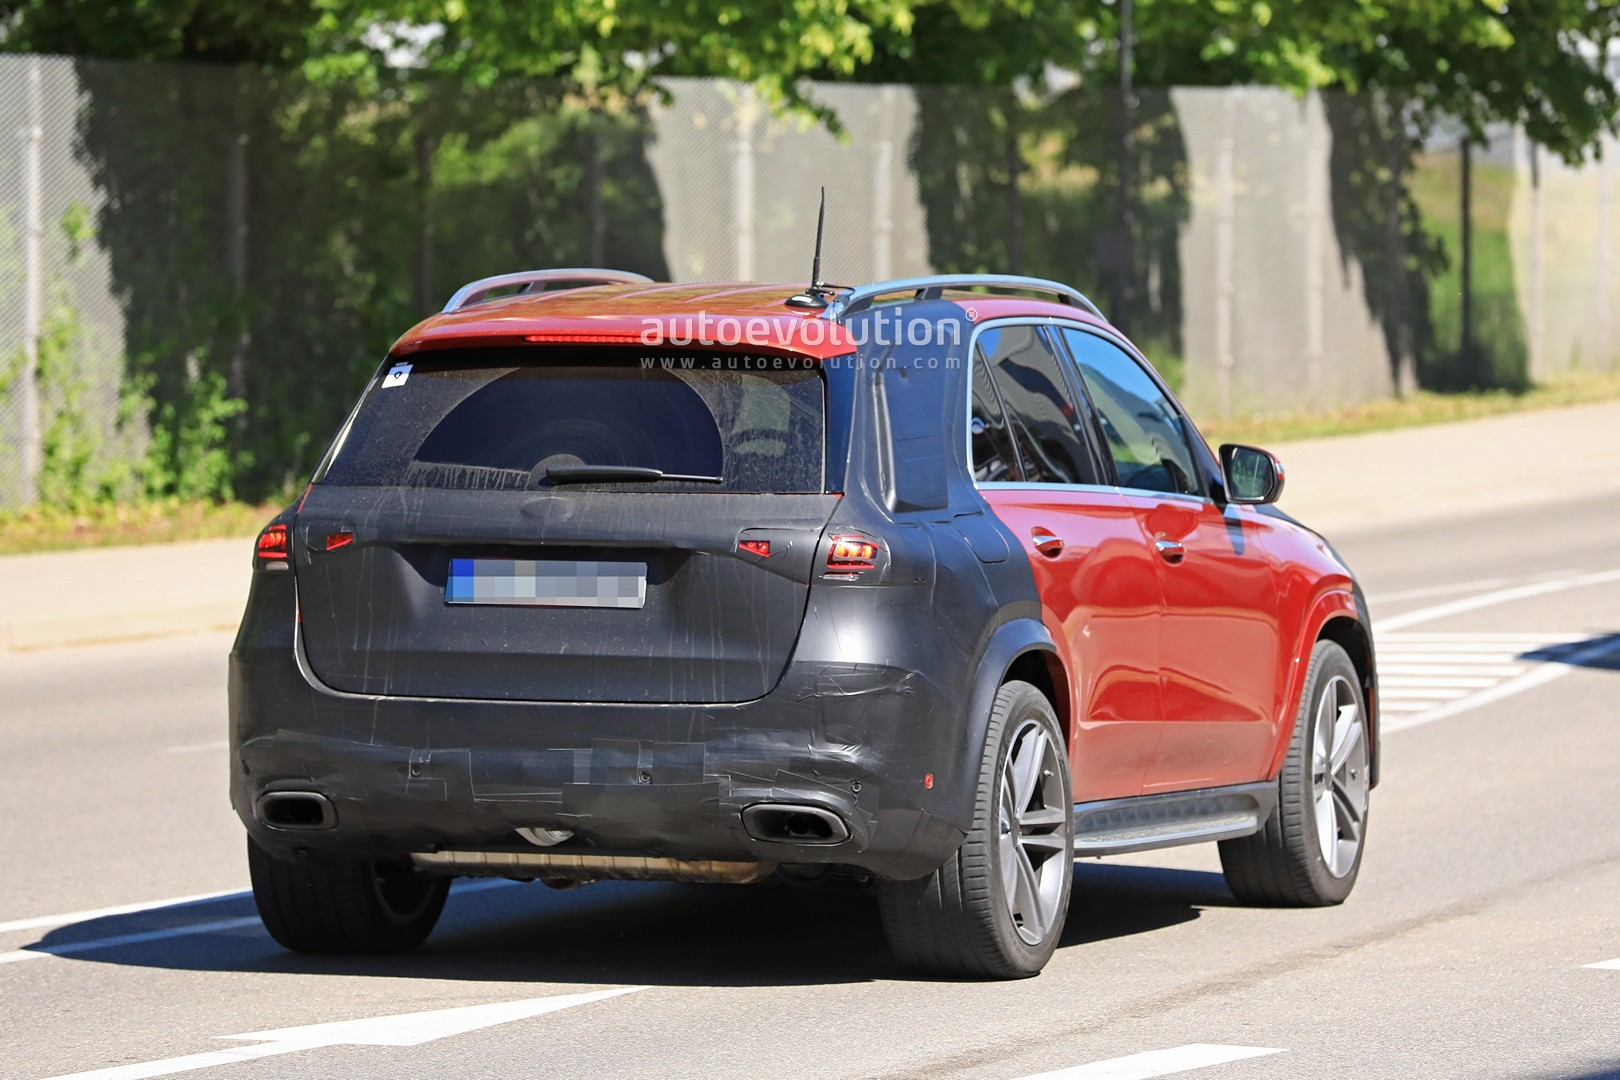 2019 Mercedes-Benz GLE 350 d or 400 d With AMG Line Body ...